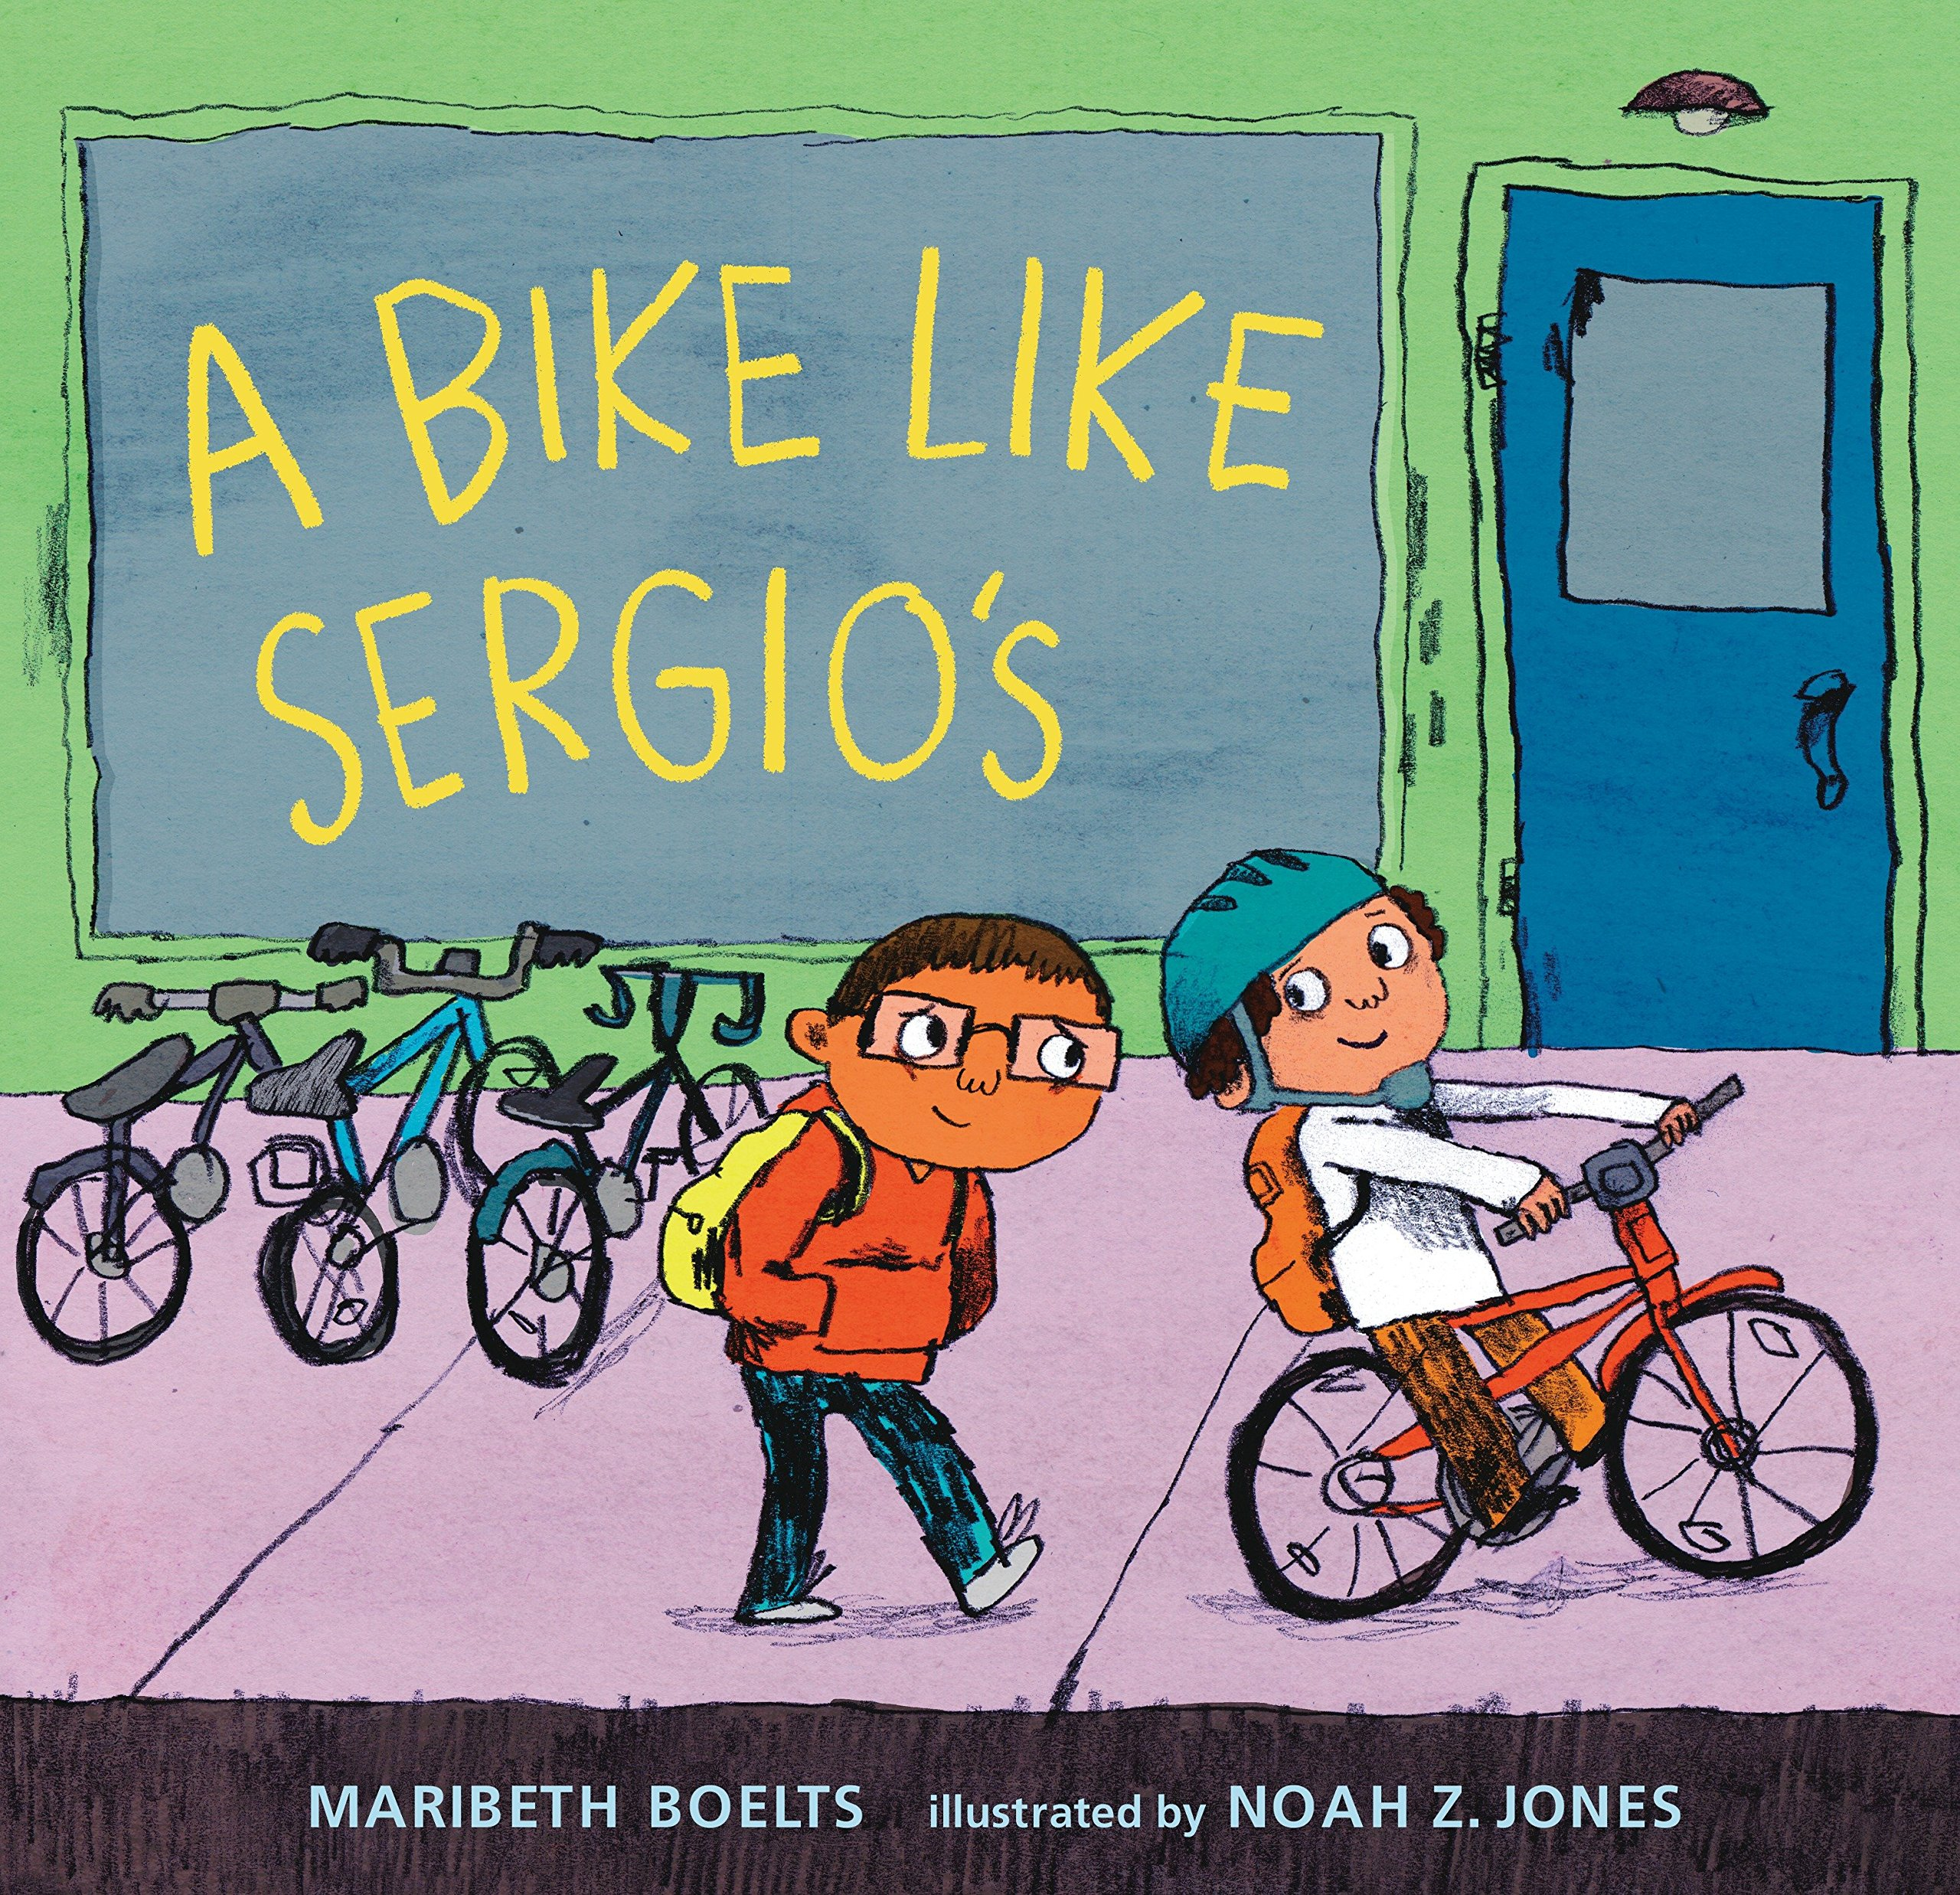 A Bike Like Sergio's by Maribeth Boelts